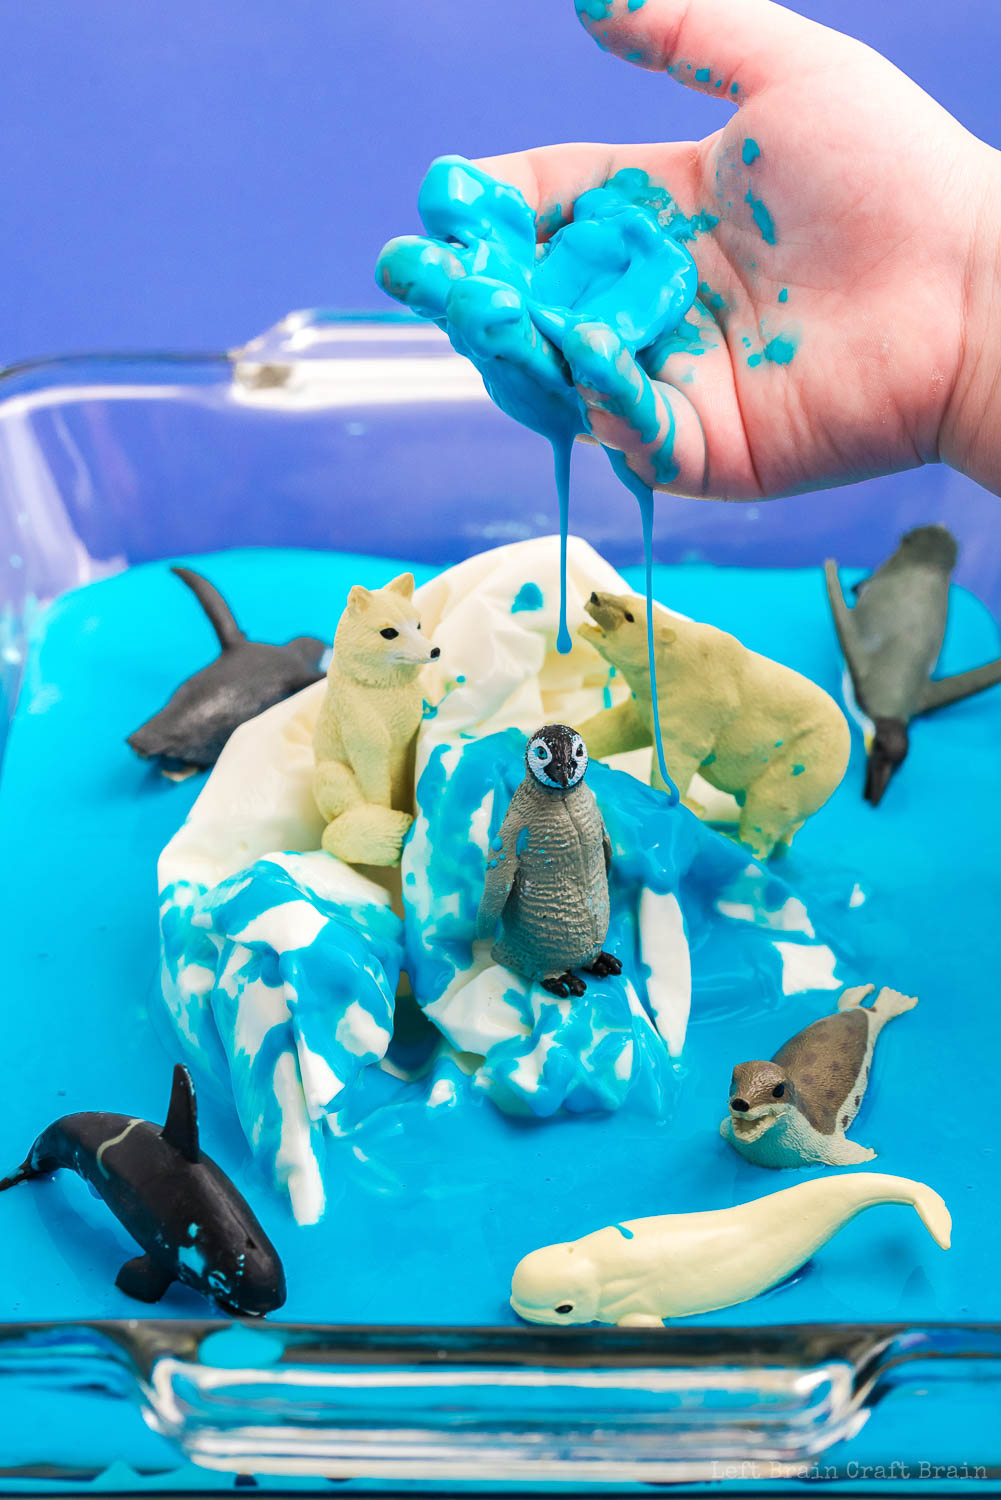 Turn a fun play session into science fun with frozen Polar Oobleck. The kids will learn about animal habitats, chemistry, and climate change.